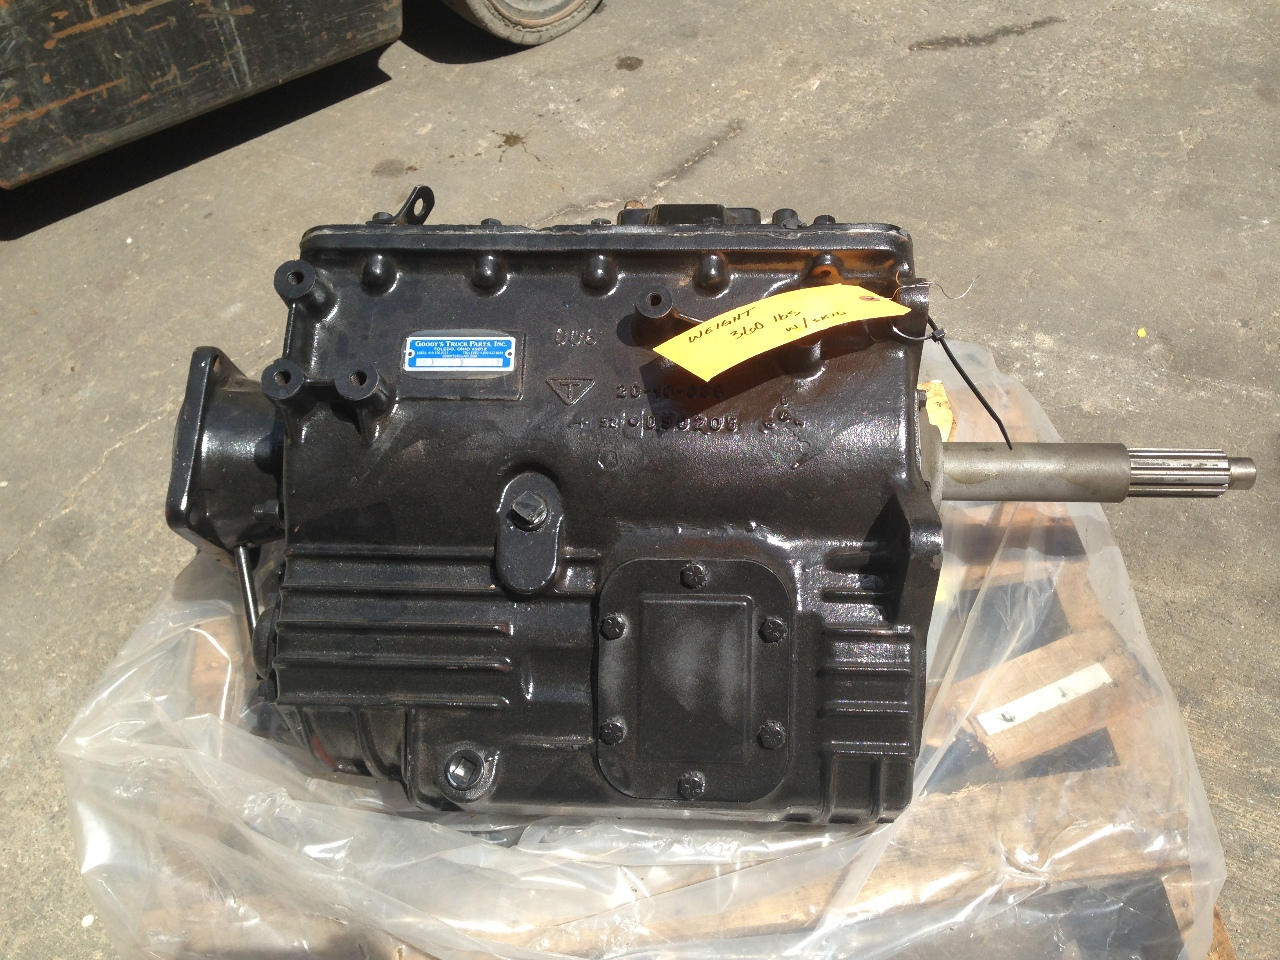 Eaton fuller transmission manual